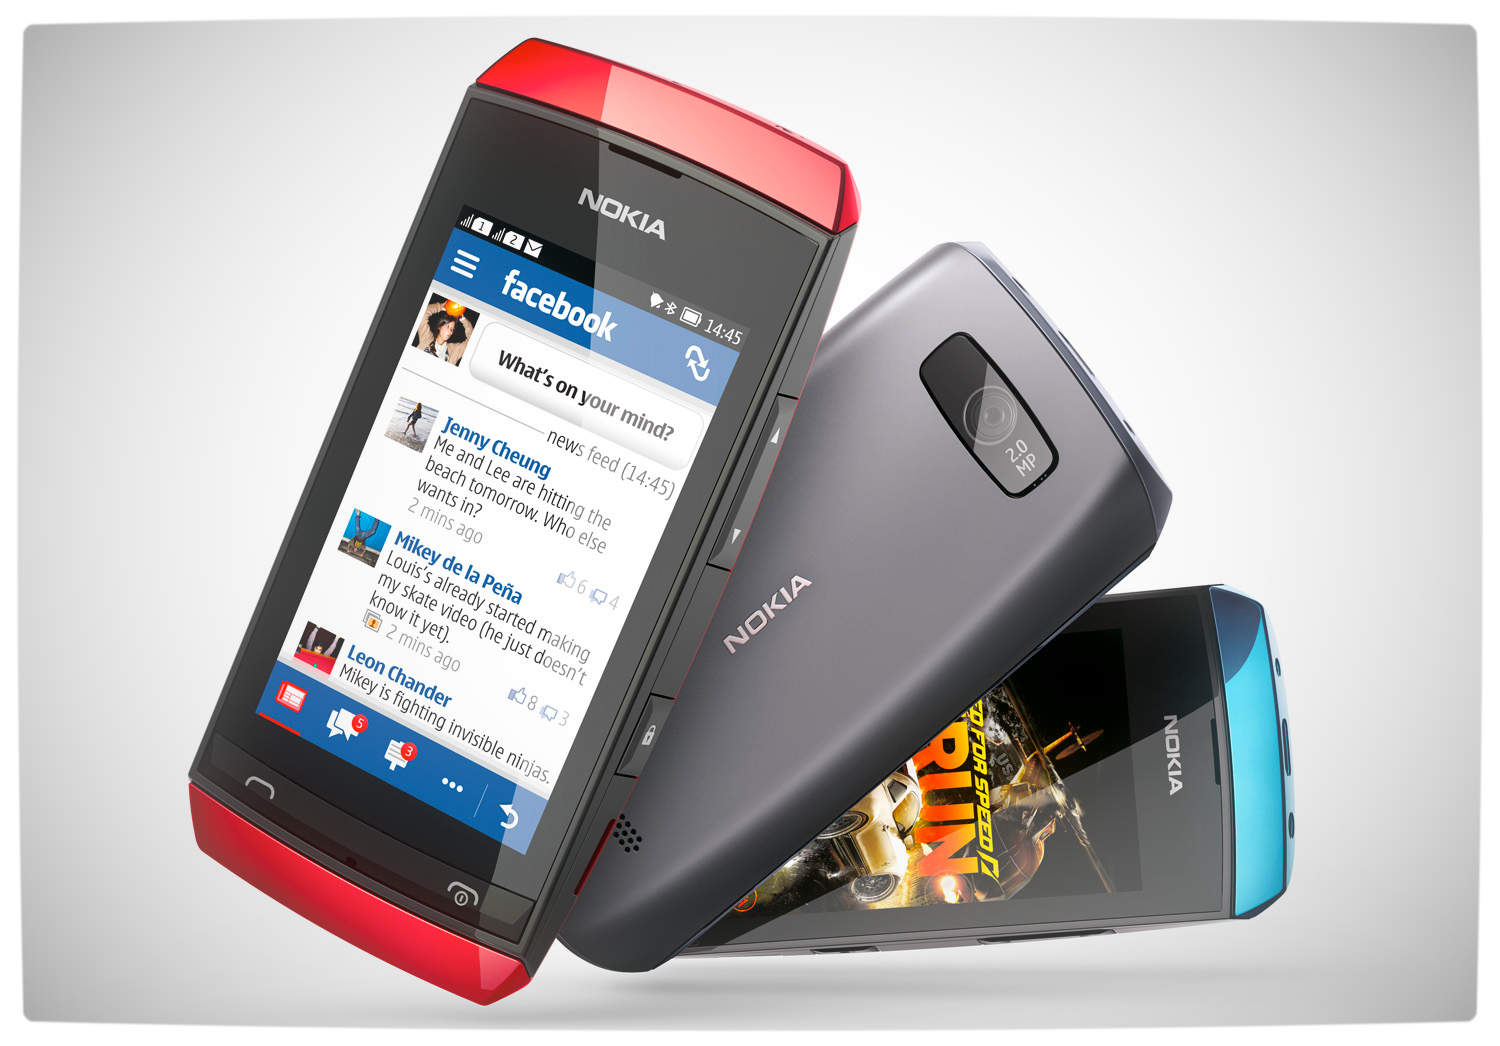 Nokia Asha 306 Apps And Games Free Download